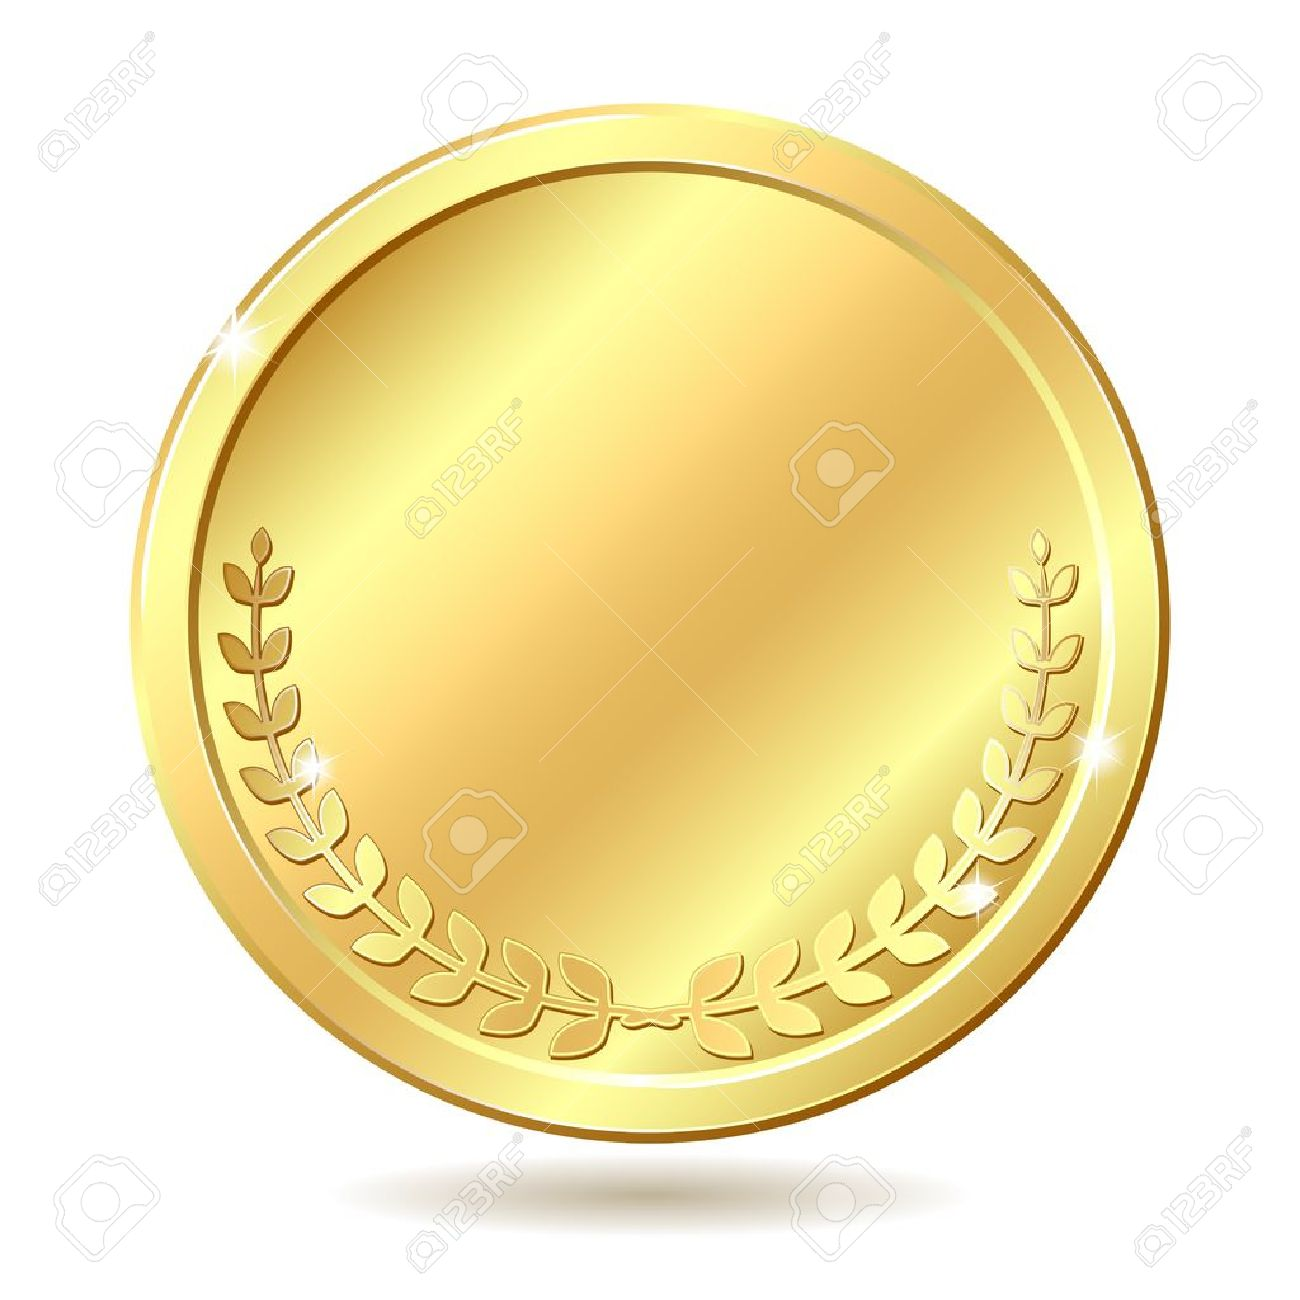 Gold coin  Vector illustration isolated on white background Stock Vector - 14388954